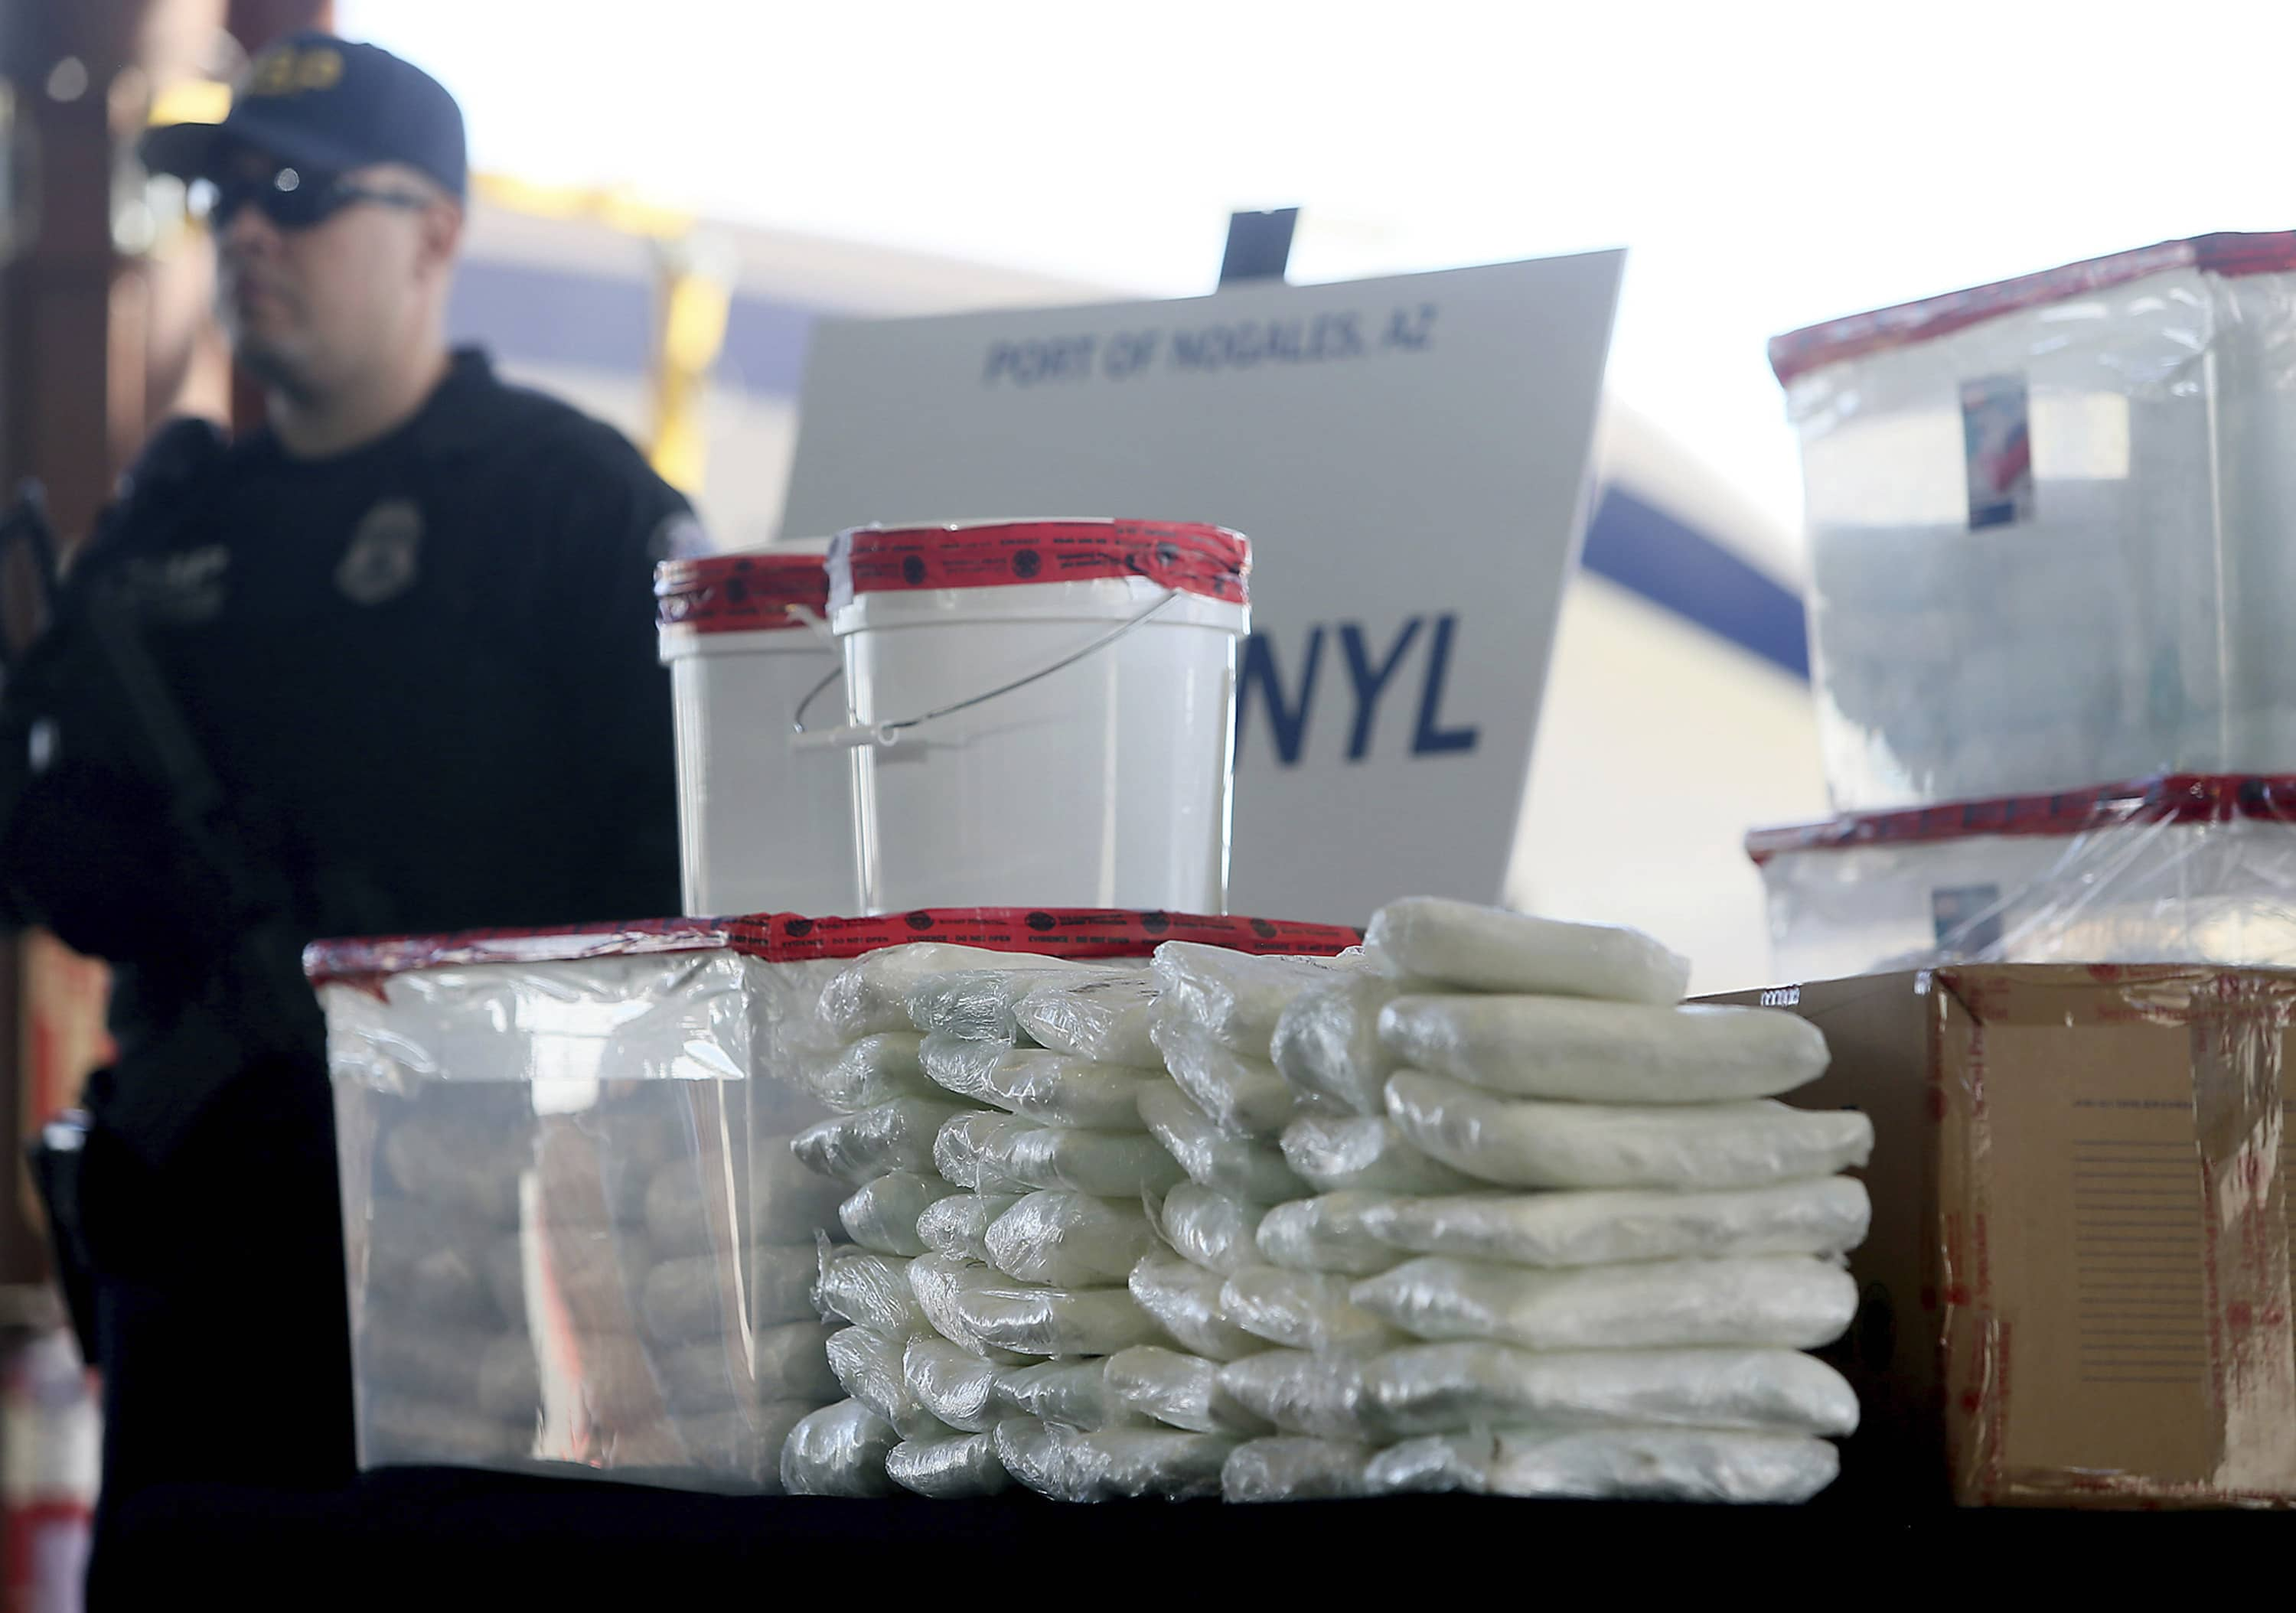 Photo of fentanyl and meth that was seized by Border Patrol